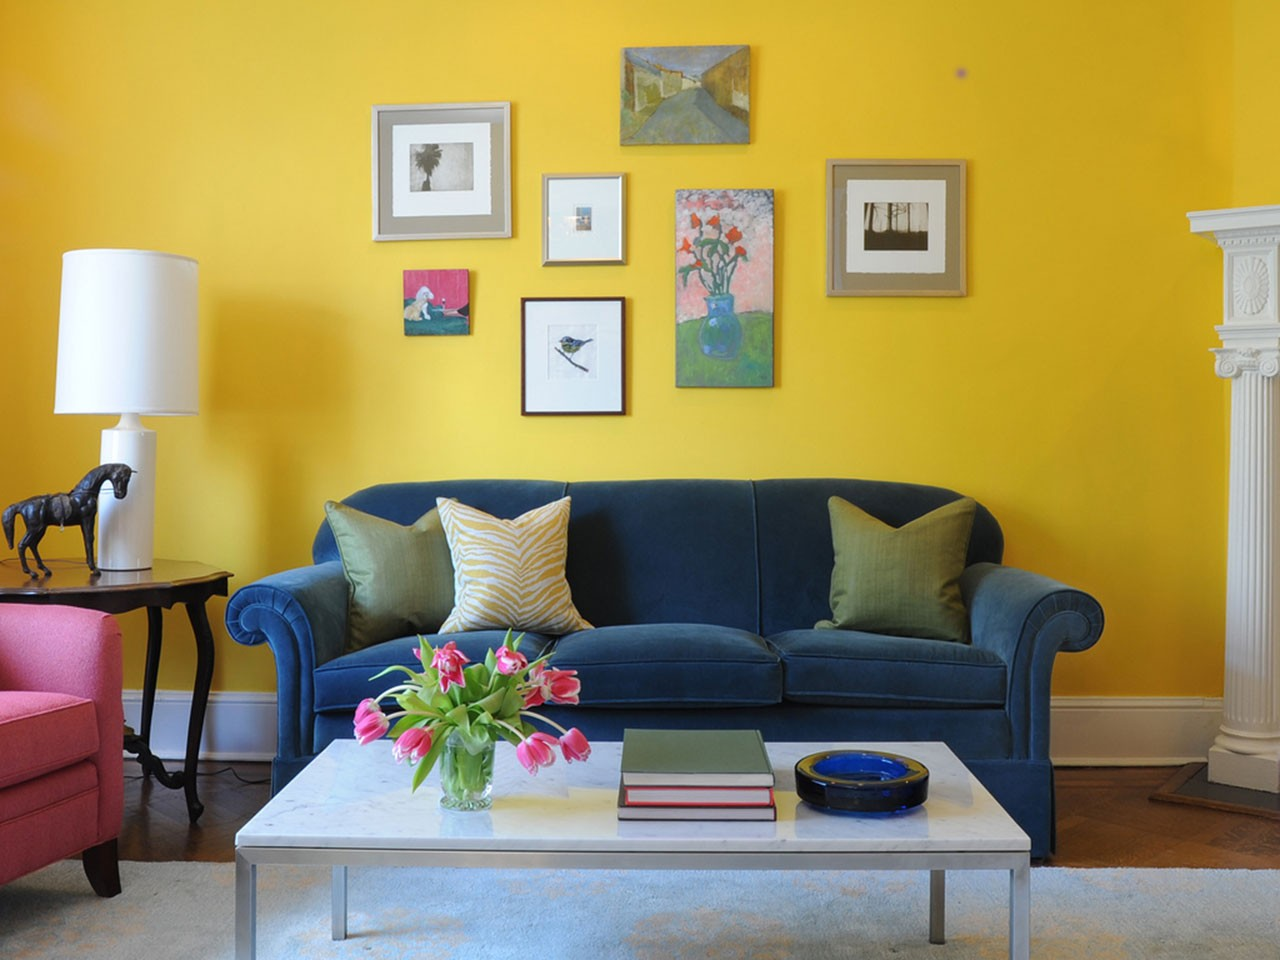 The Psychology Behind the Colors in Your Home